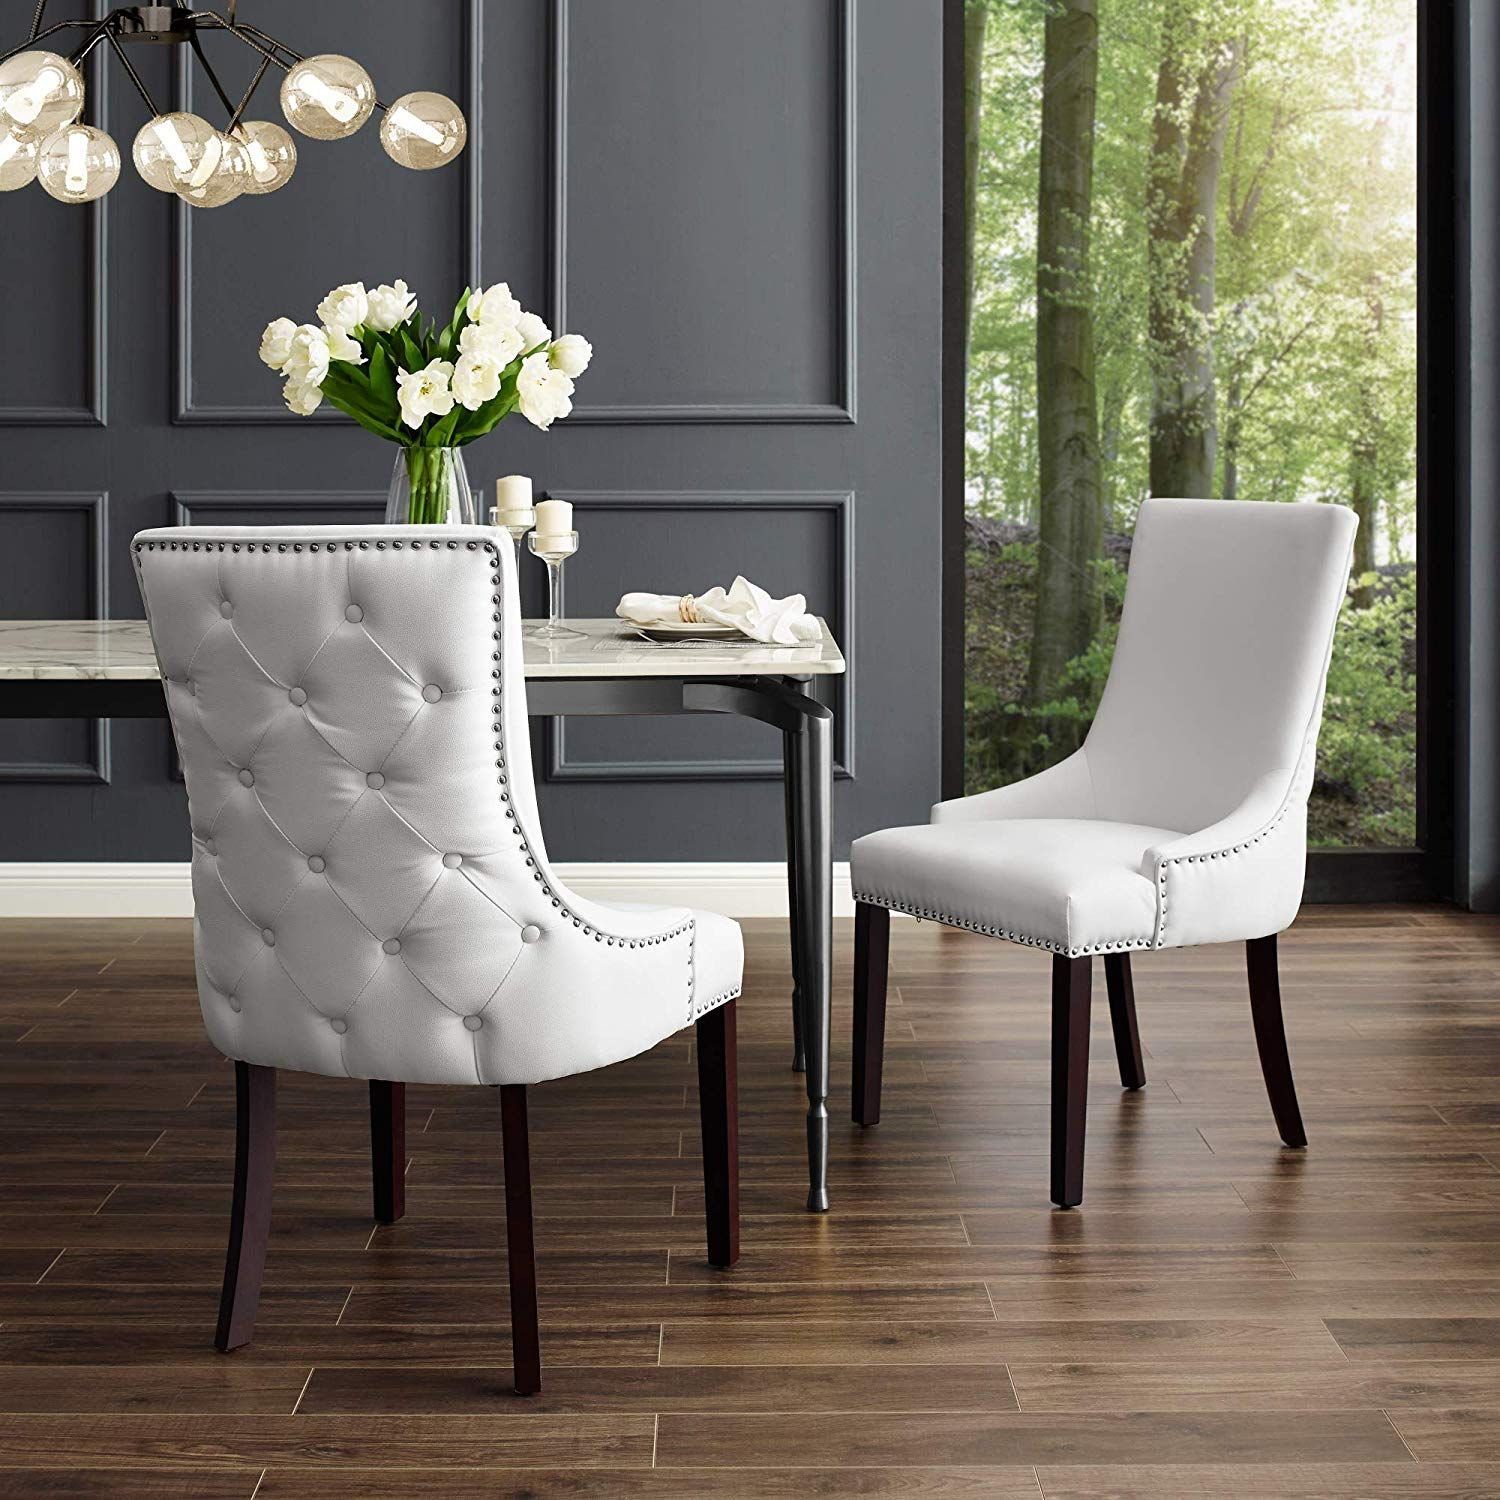 Inspiredhome White Leather Dining Chair Design Oscar Set Of 2